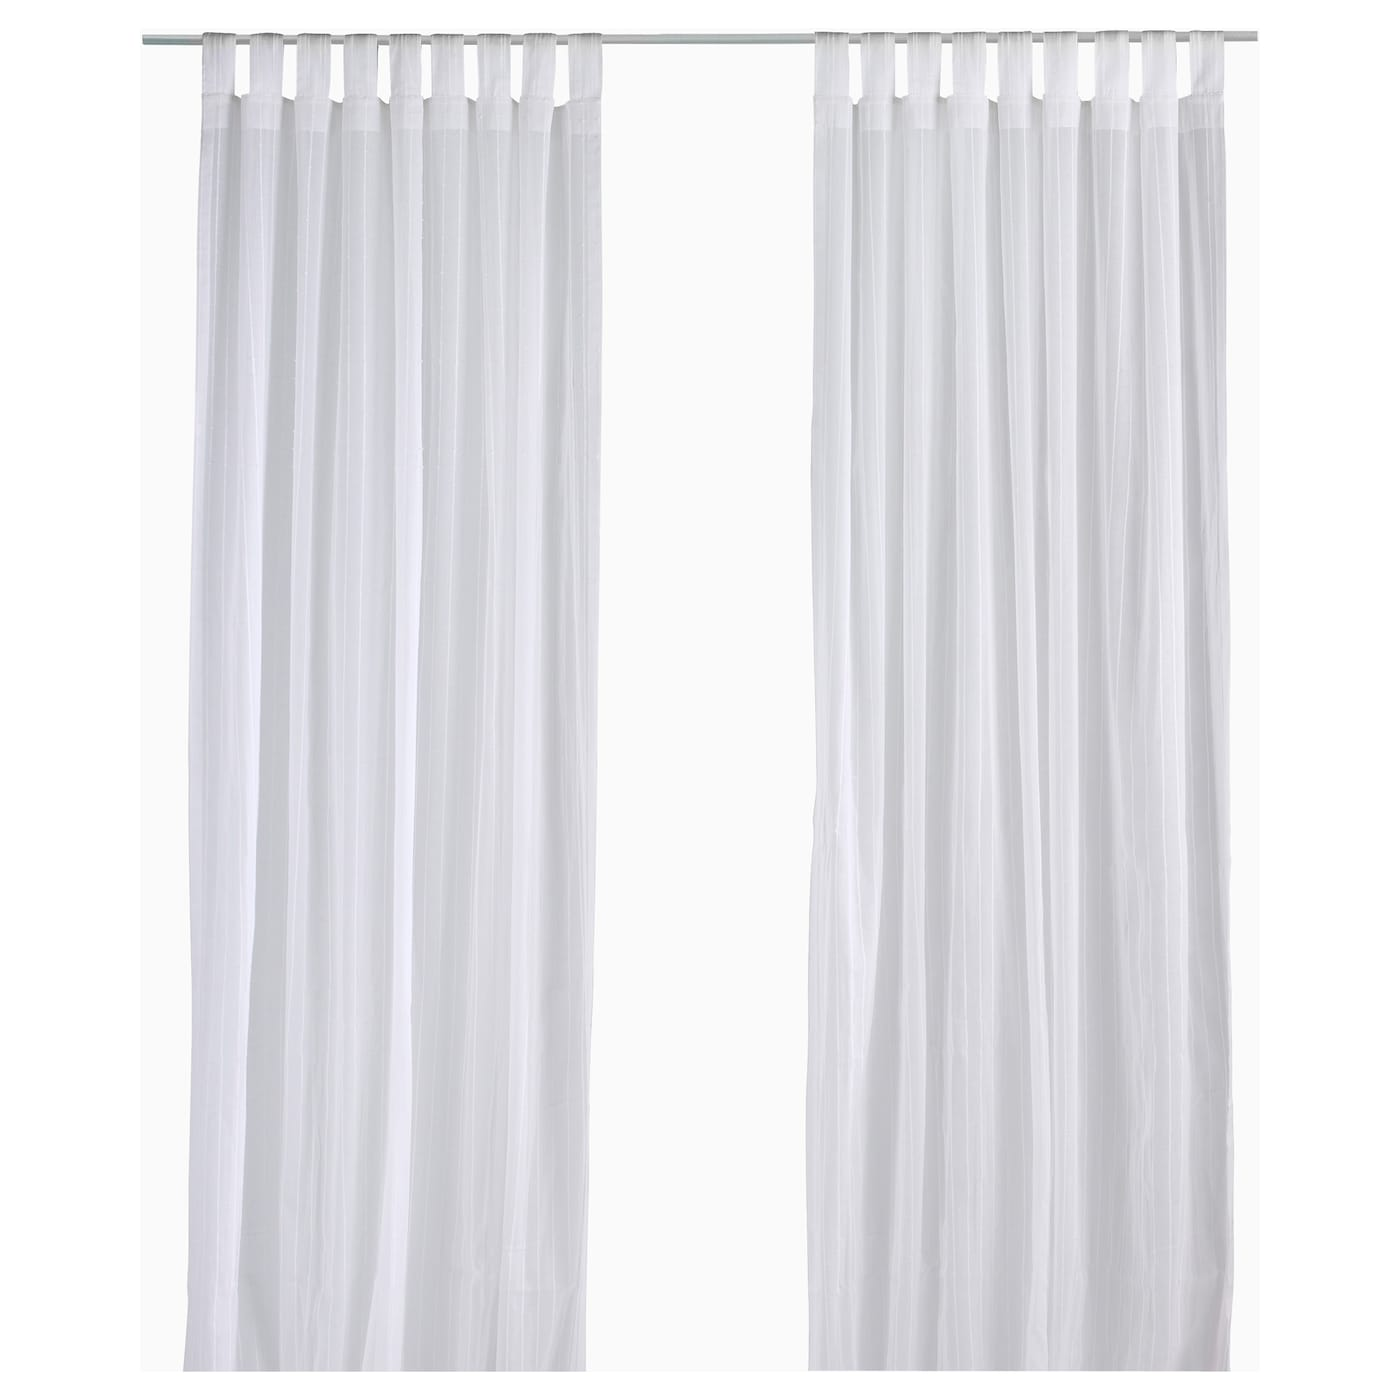 IKEA MATILDA Sheer Curtains, 1 Pair